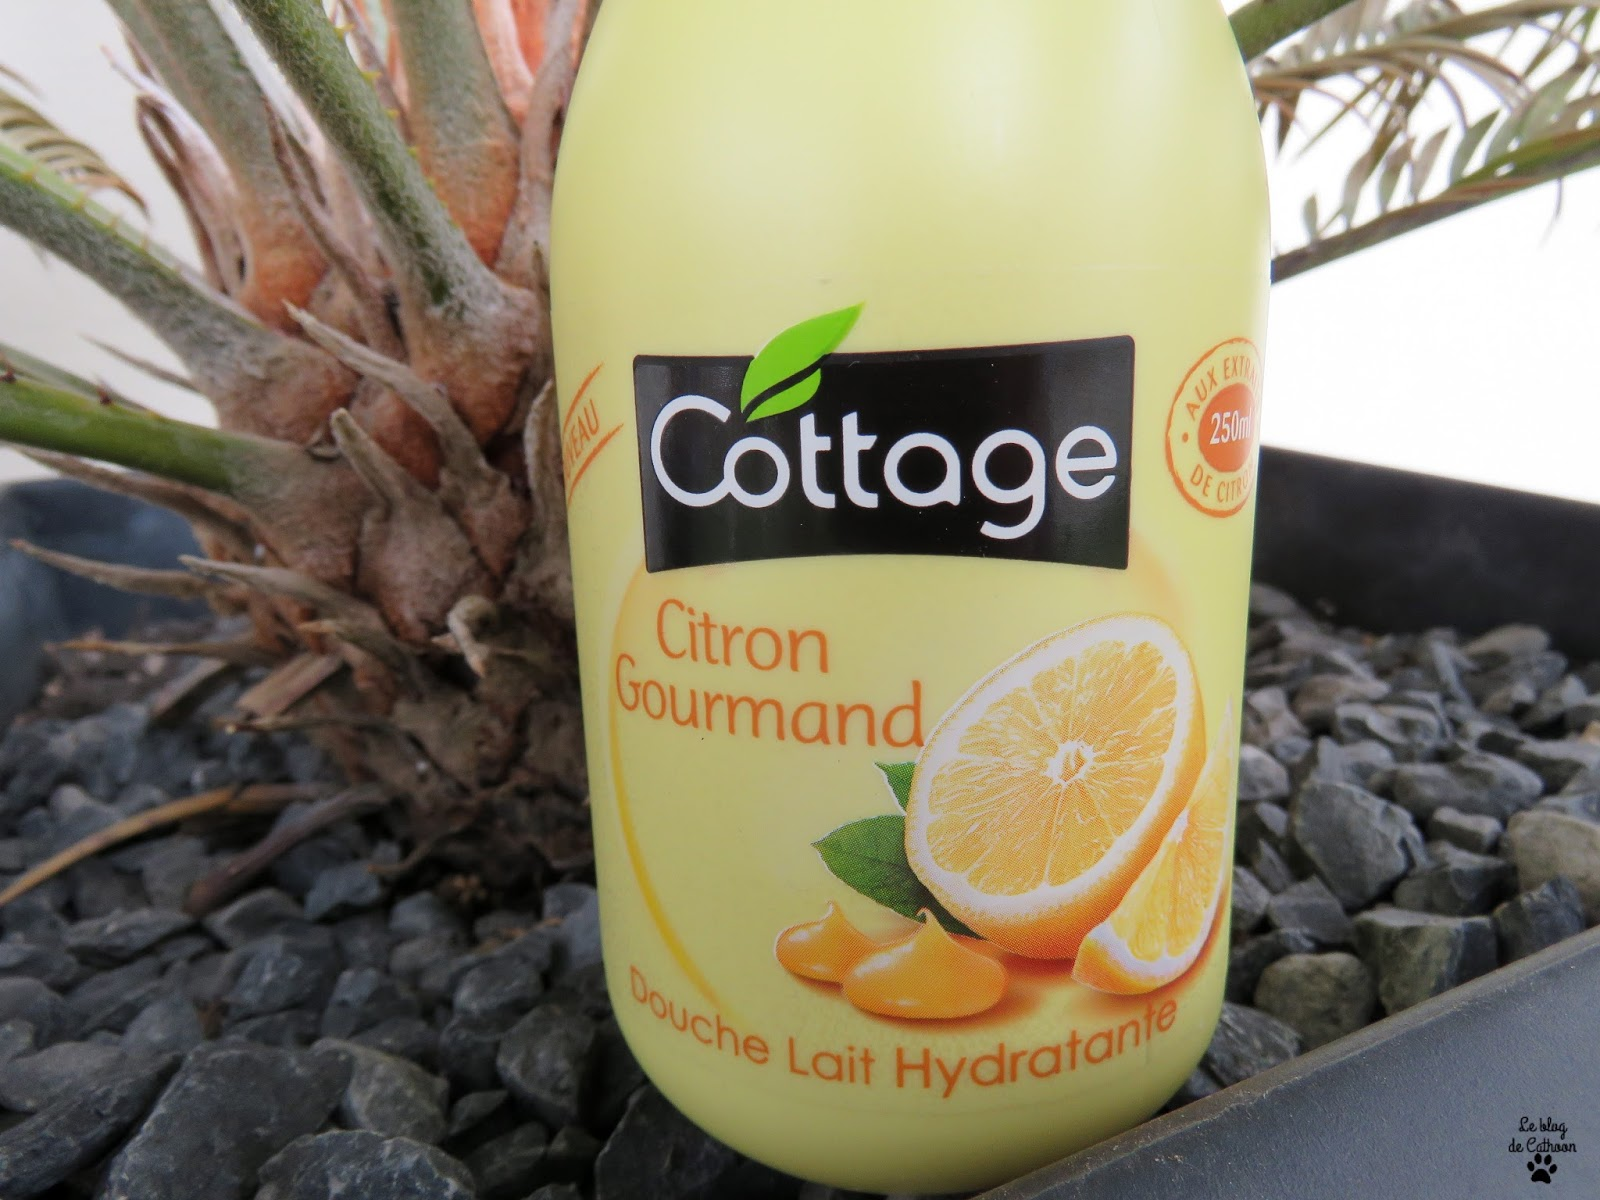 Citron Gourmand - Douche Lait Hydratant - Cottage